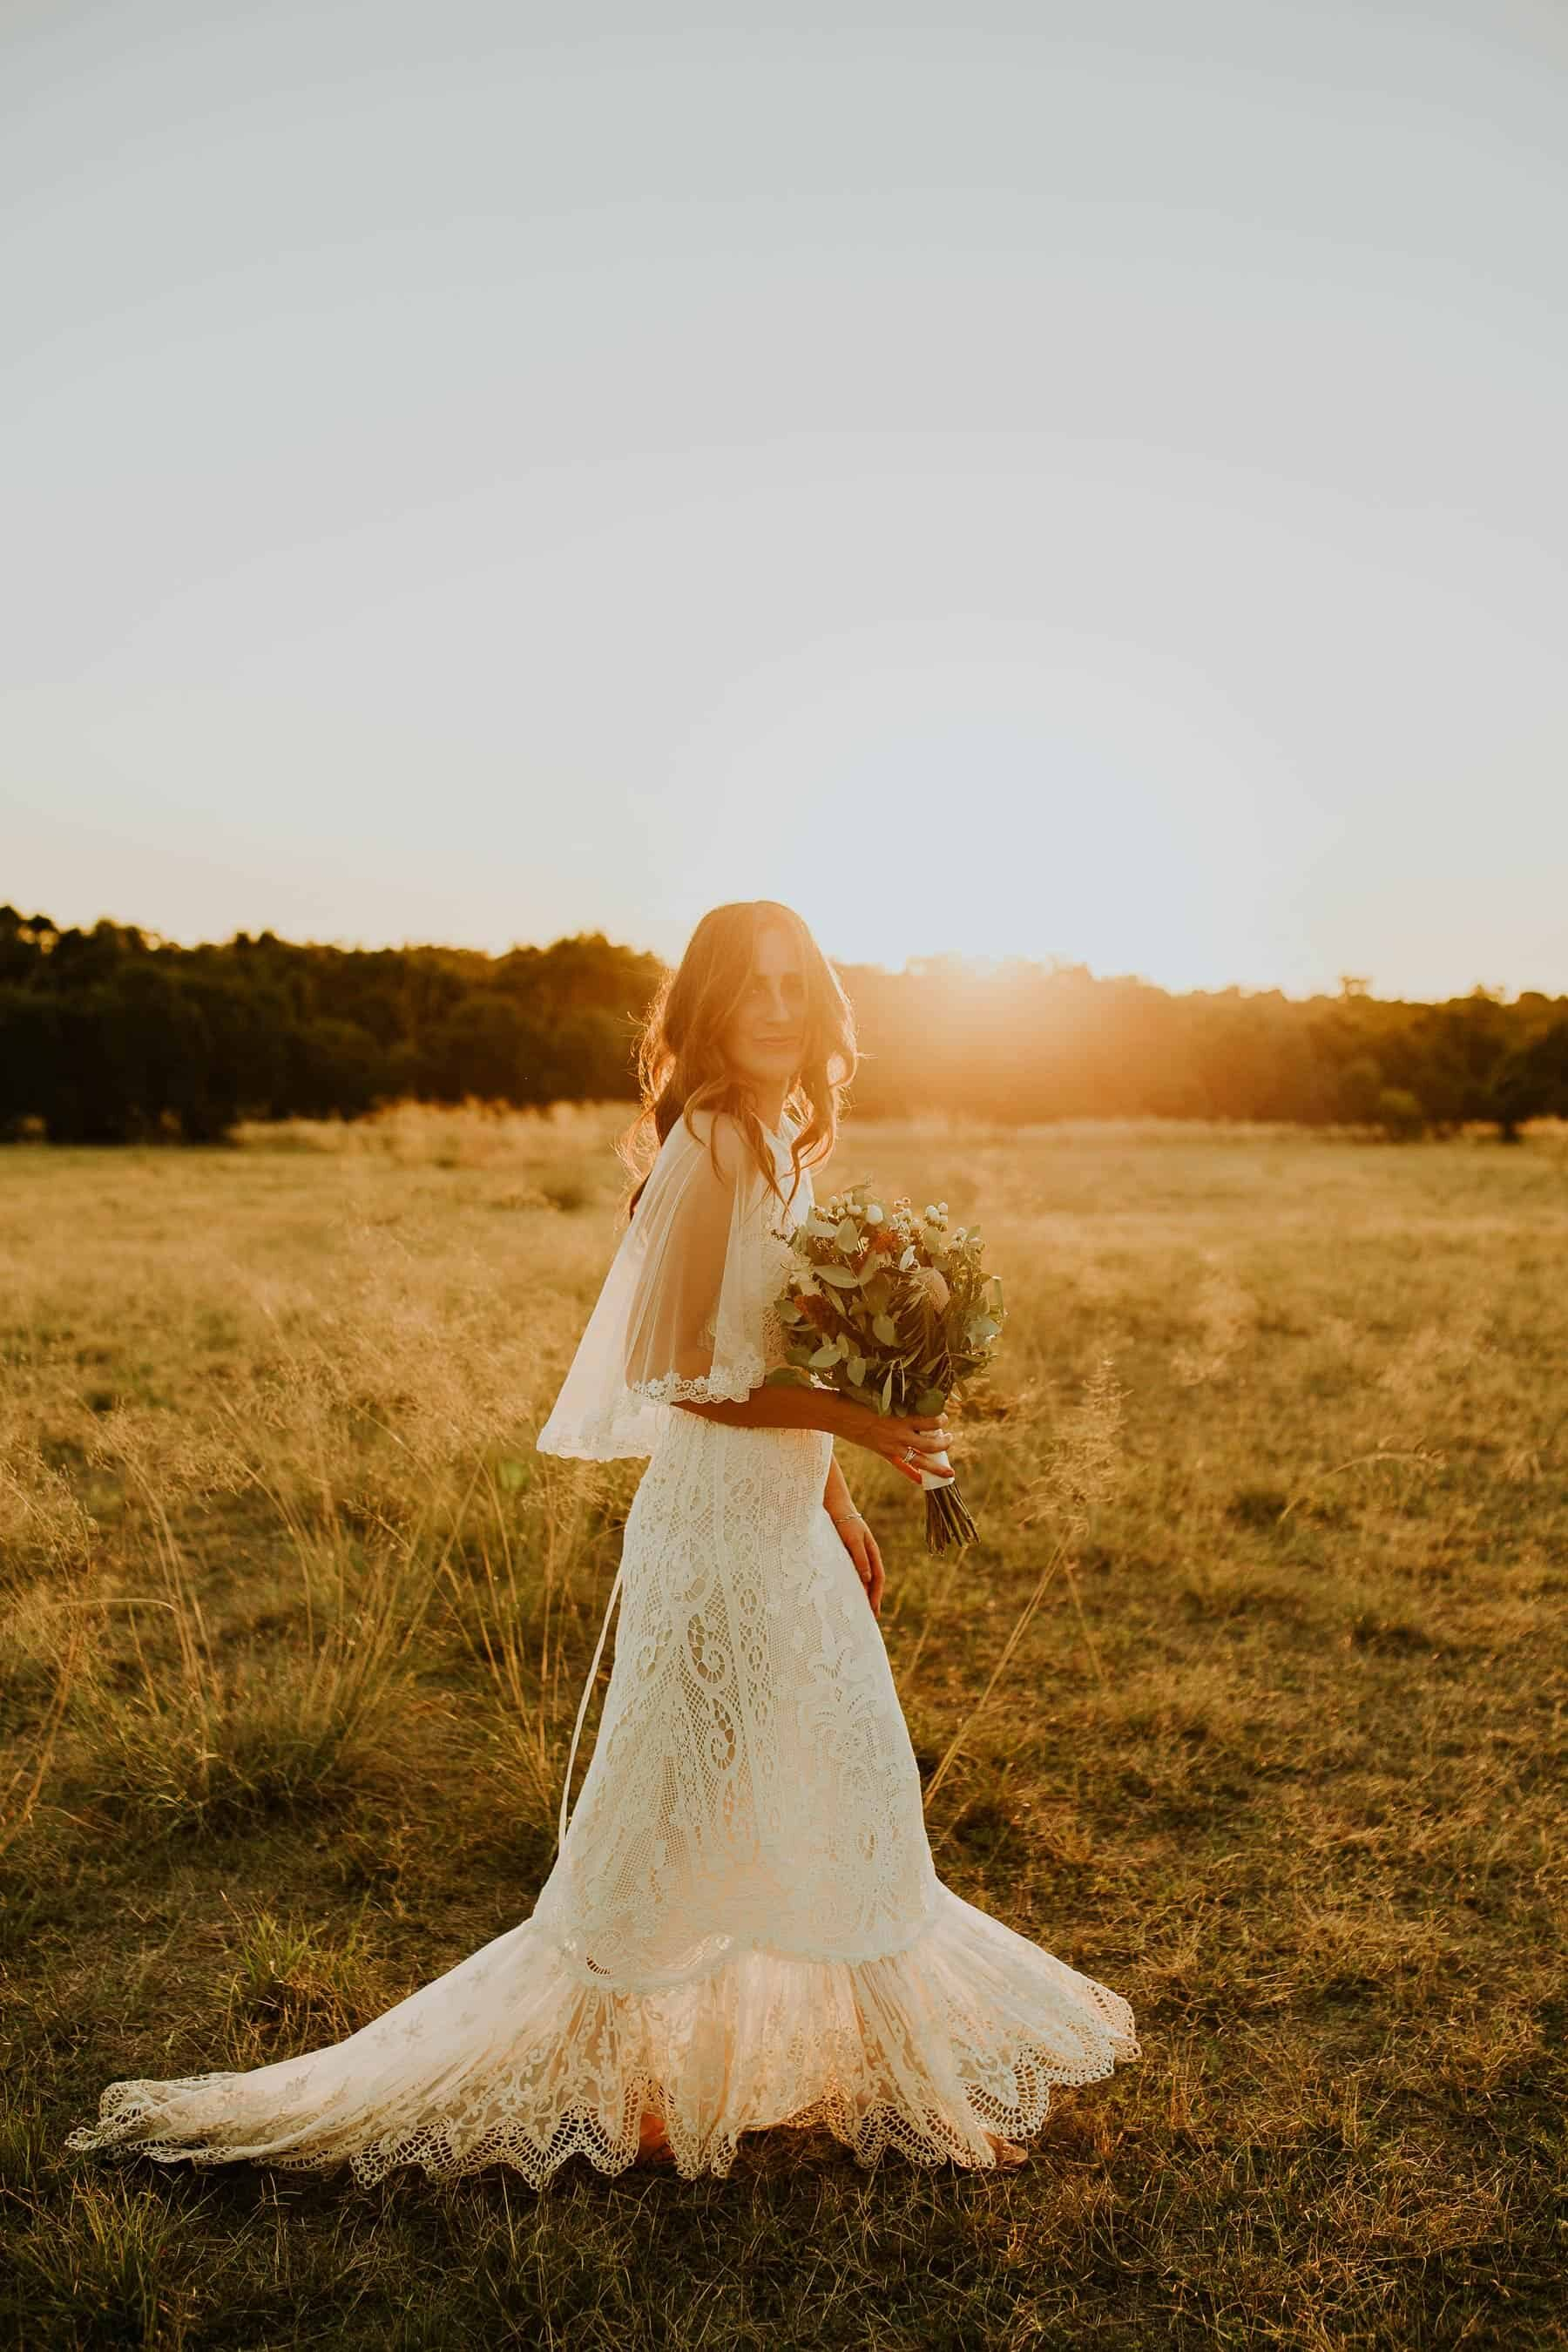 boho bride in lace wedding dress and cape by Spell Designs